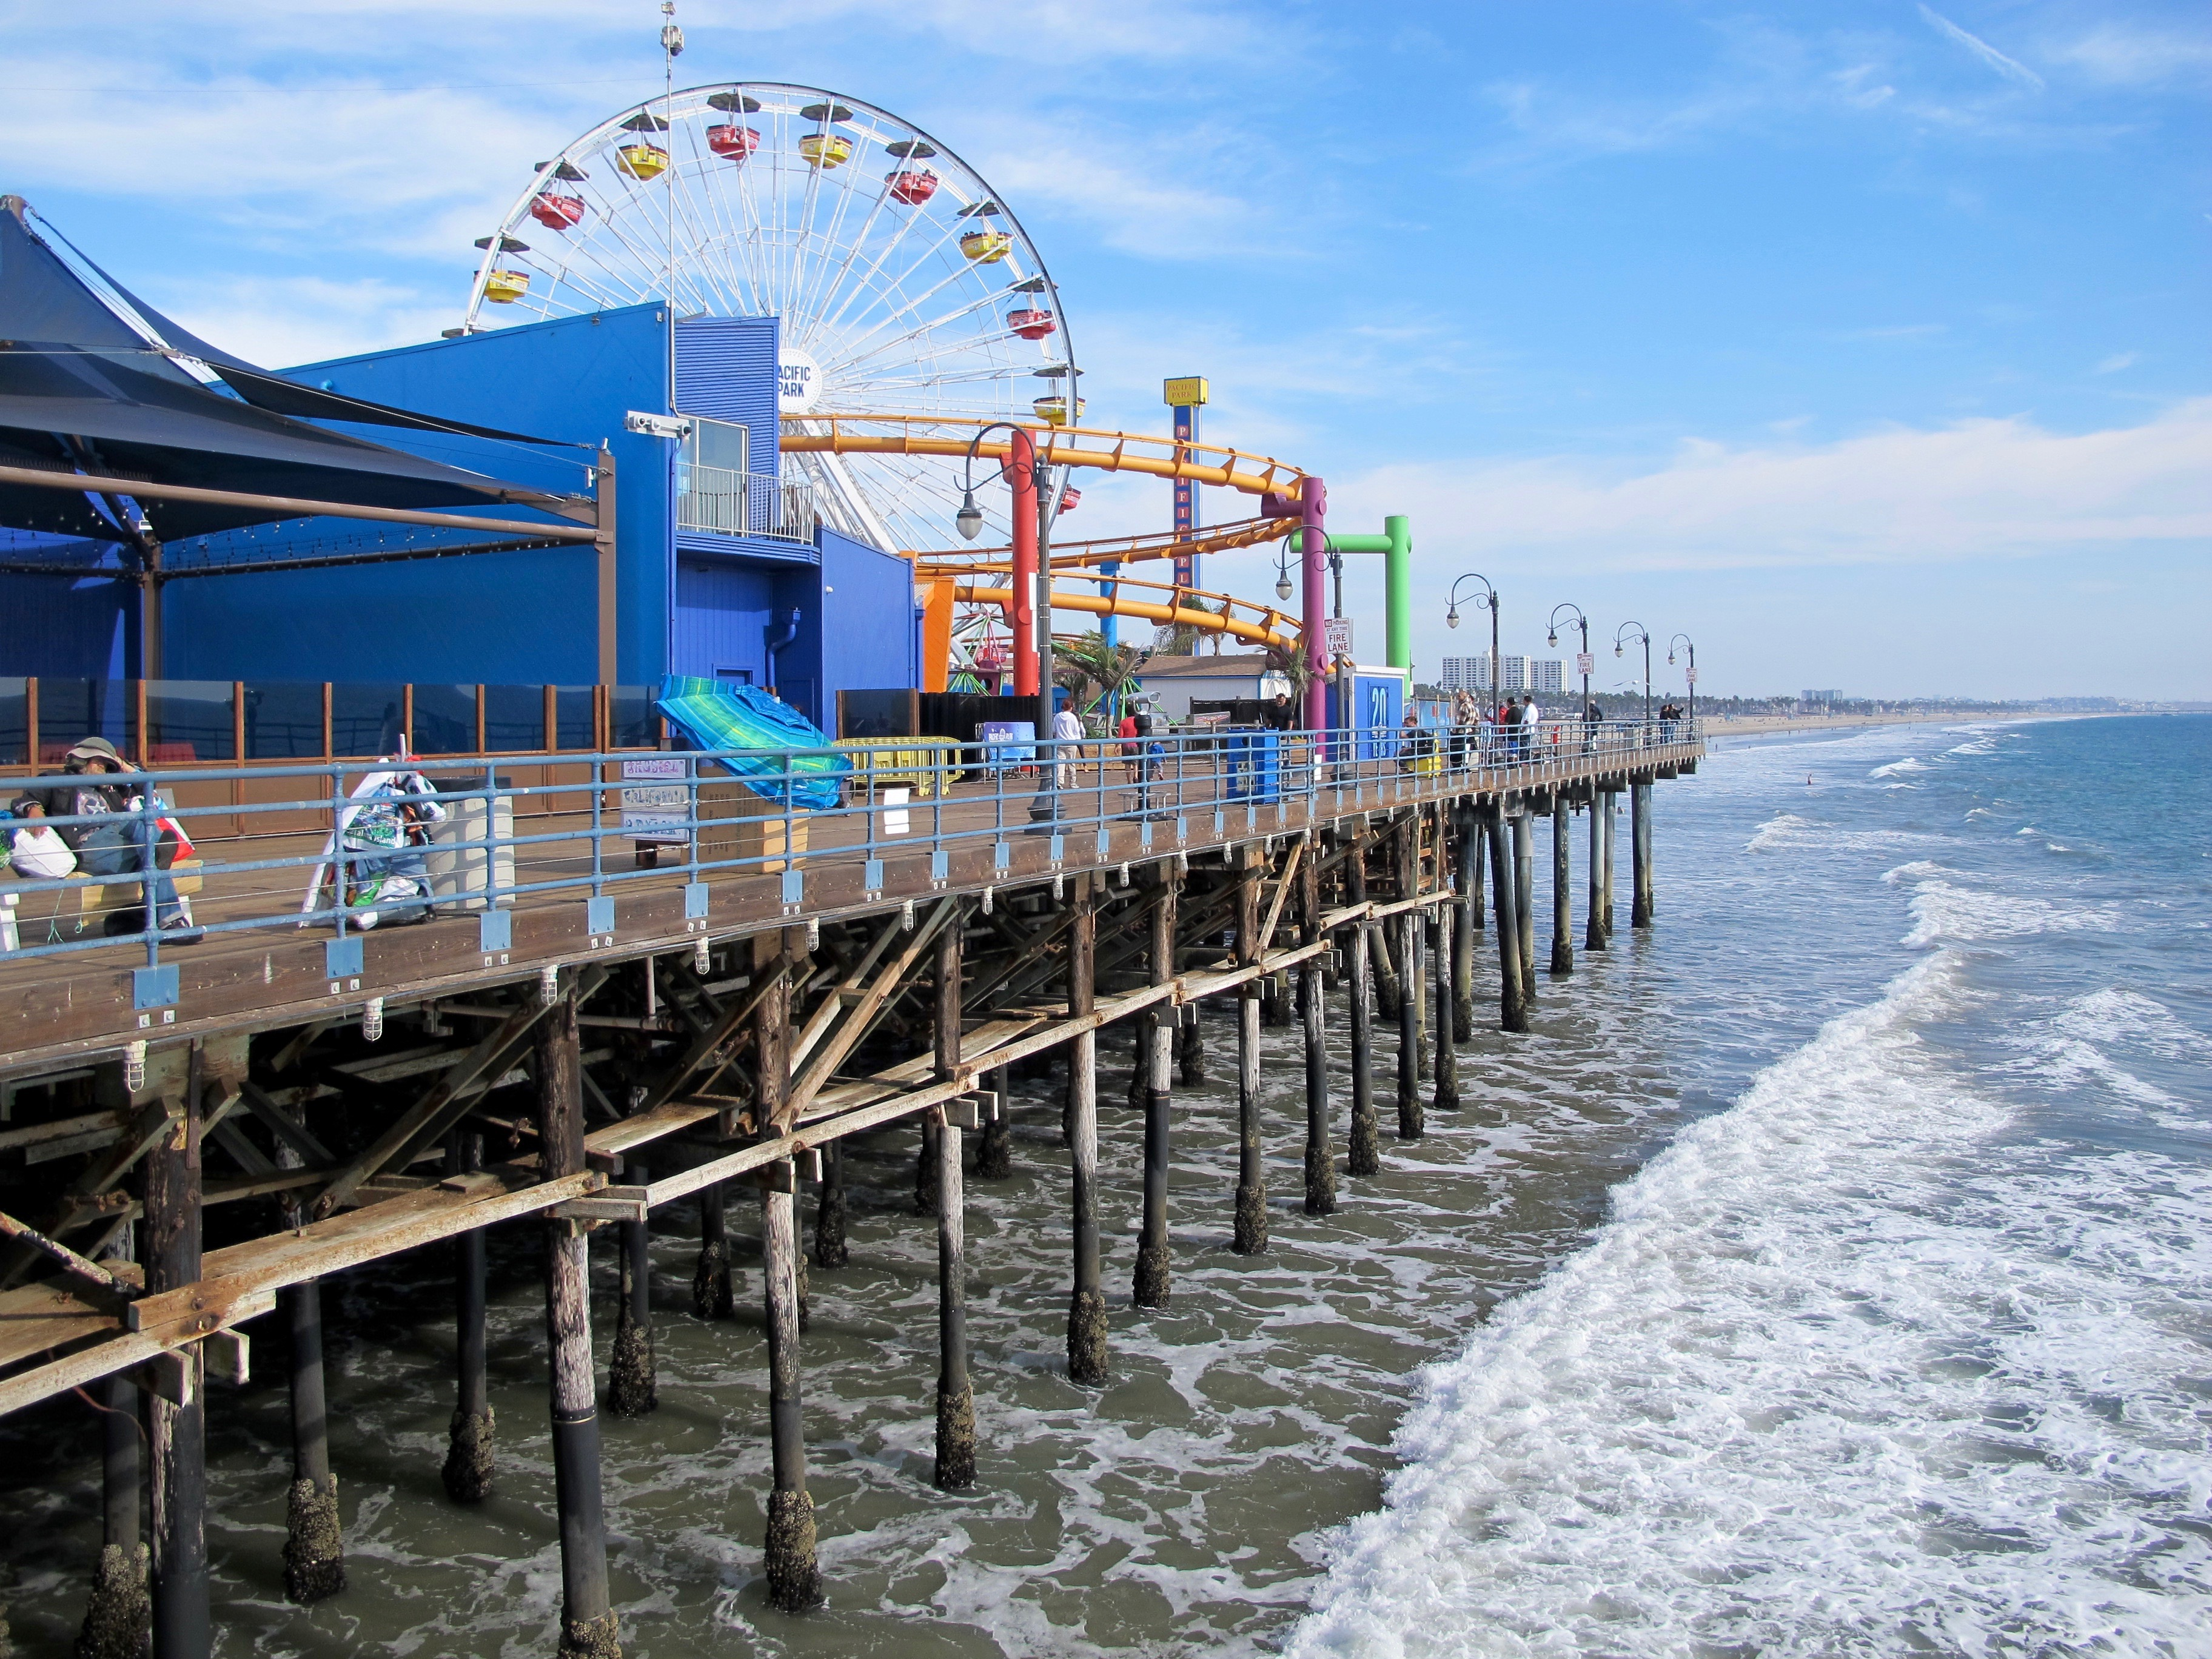 """You are looking at the historic Santa Monica Pier from the north side. This iconic landmark and the ceremonial terminus of the old Route 66 was built in 1909. The Ferris wheel is one-of-a-kind, powered by solar panels. You can also see the rails of the Blue Streak Racer, a wooden roller coaster that once belonged to the long-gone Wonderland amusement park in San Diego. Dozens of TV shows, music videos and films have been made here, including """"Titanic,"""" """"Forrest Gump,"""" """"Elmer Gantry,"""" """"Iron Man,"""" """"Grey's Anatomy,"""" """"Modern Family"""" and """"Amazing Race."""" (Photos by Laurie Brindle)"""